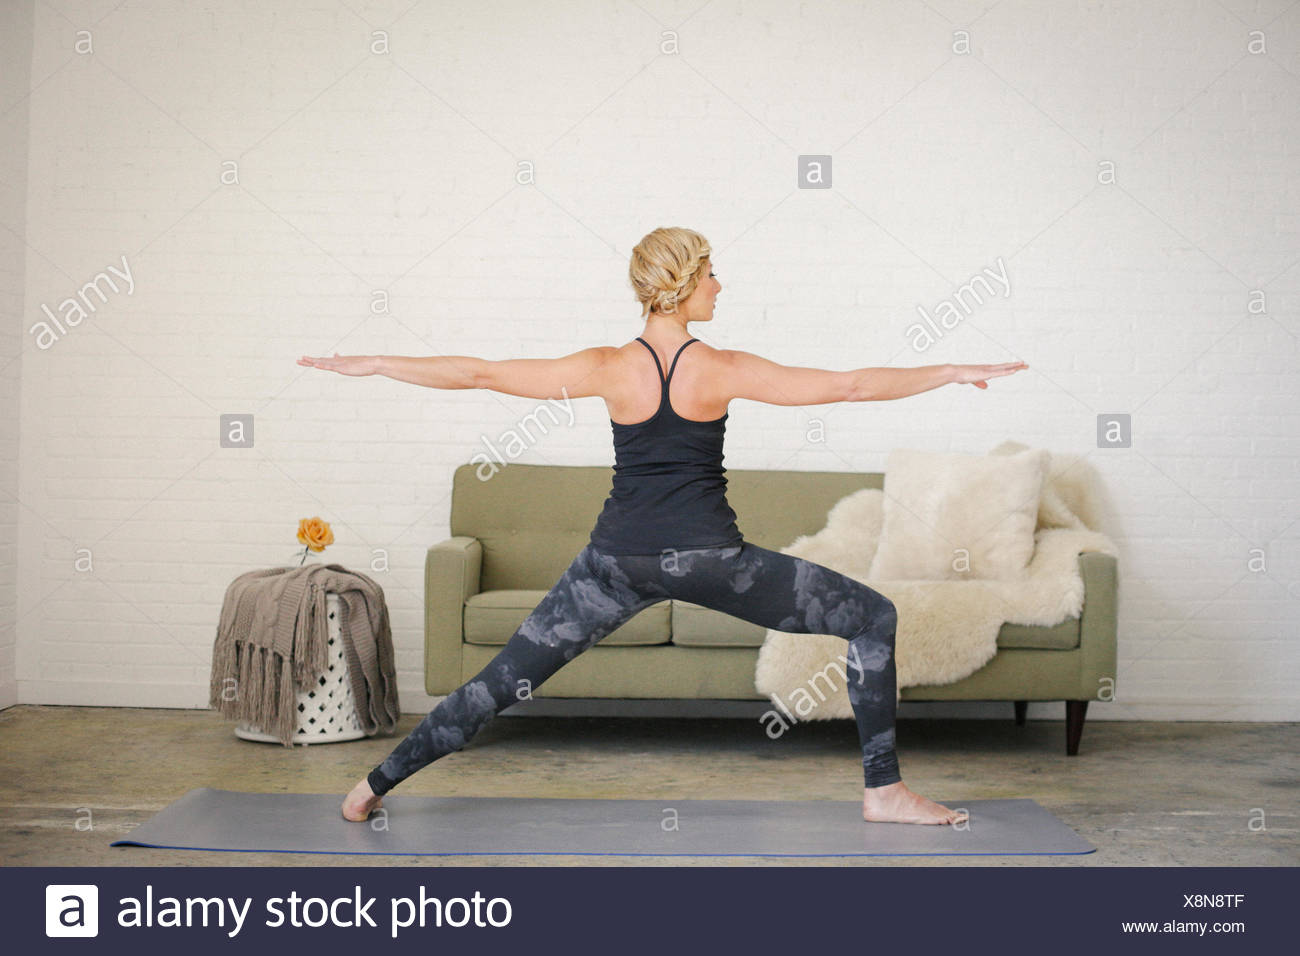 A blonde woman in a black leotard and leggings standing on a yoga mat in a room, her legs apart and arms outstretched. - Stock Image